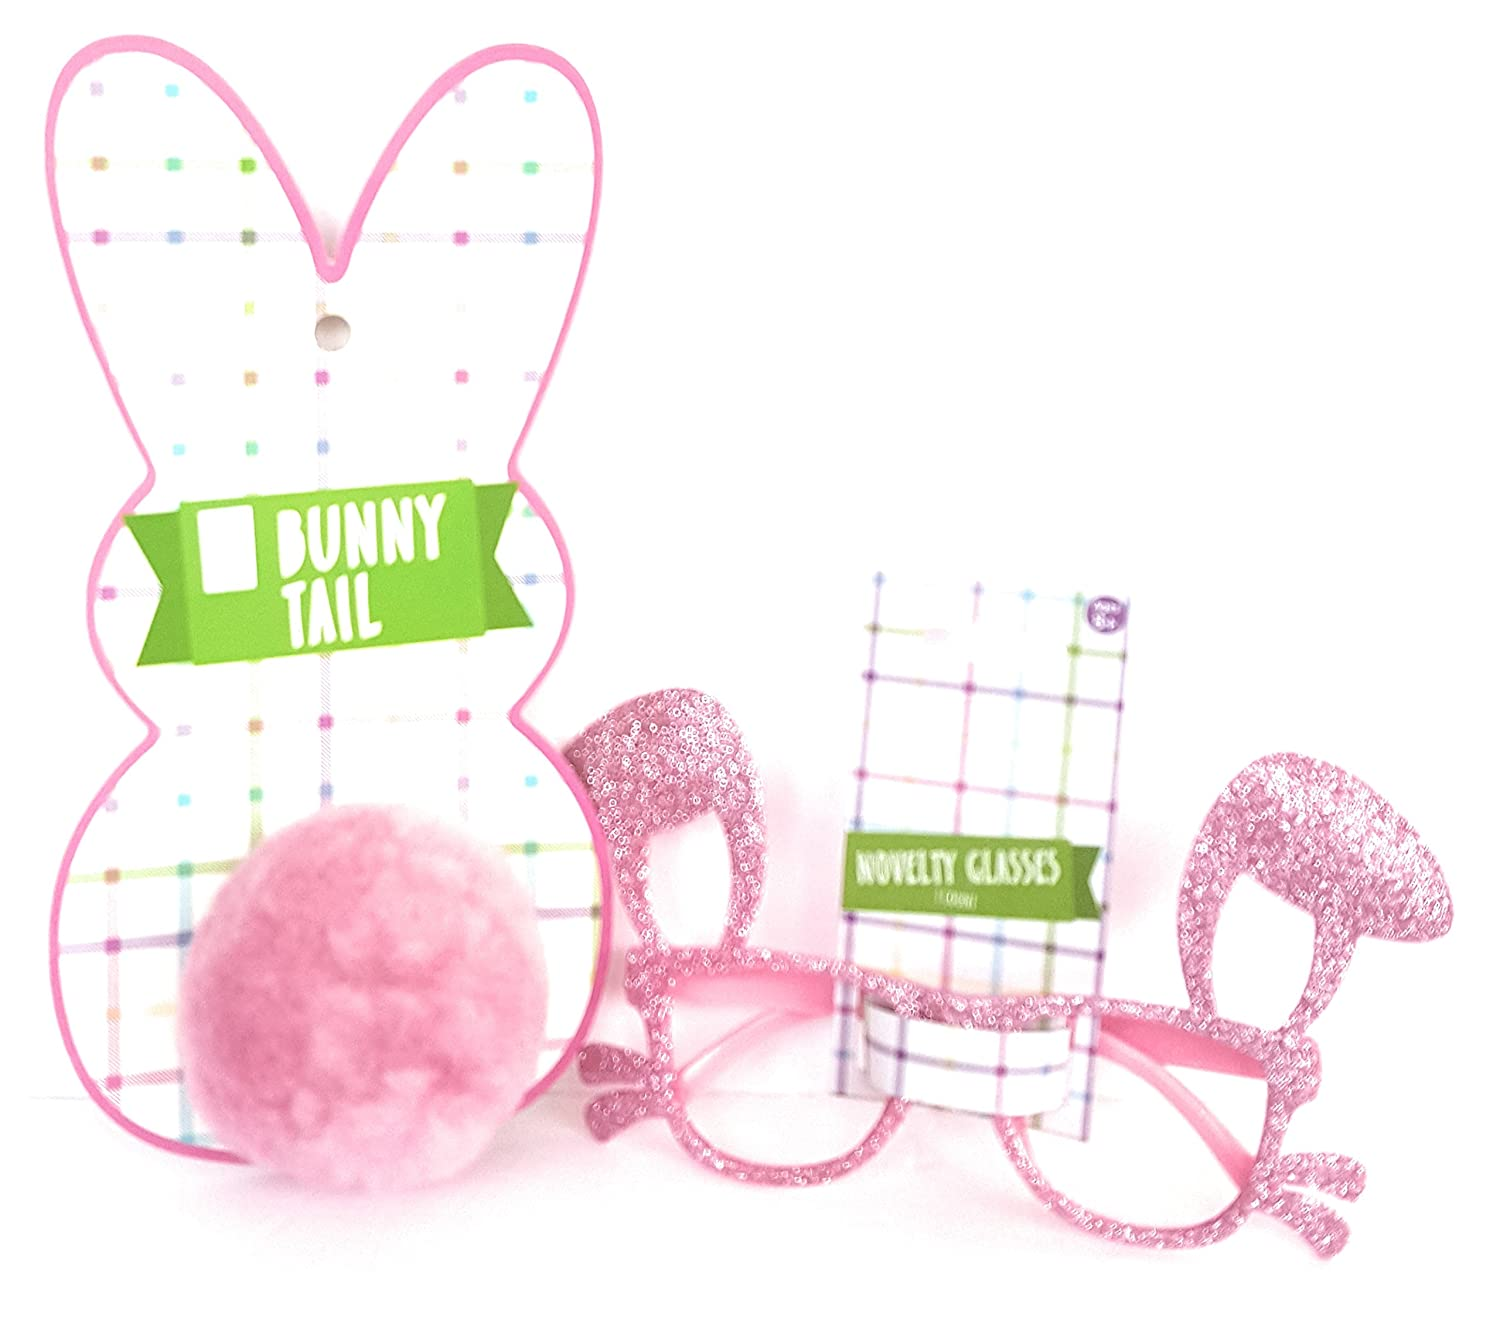 4 x 9 Pink Bundle of 2 Plastic Happy Easter Kids Toddlers Gift Children Special Costume Easter Bunny Ears and Whiskers Glitter Glasses /& Bunny Tail Party Accessory